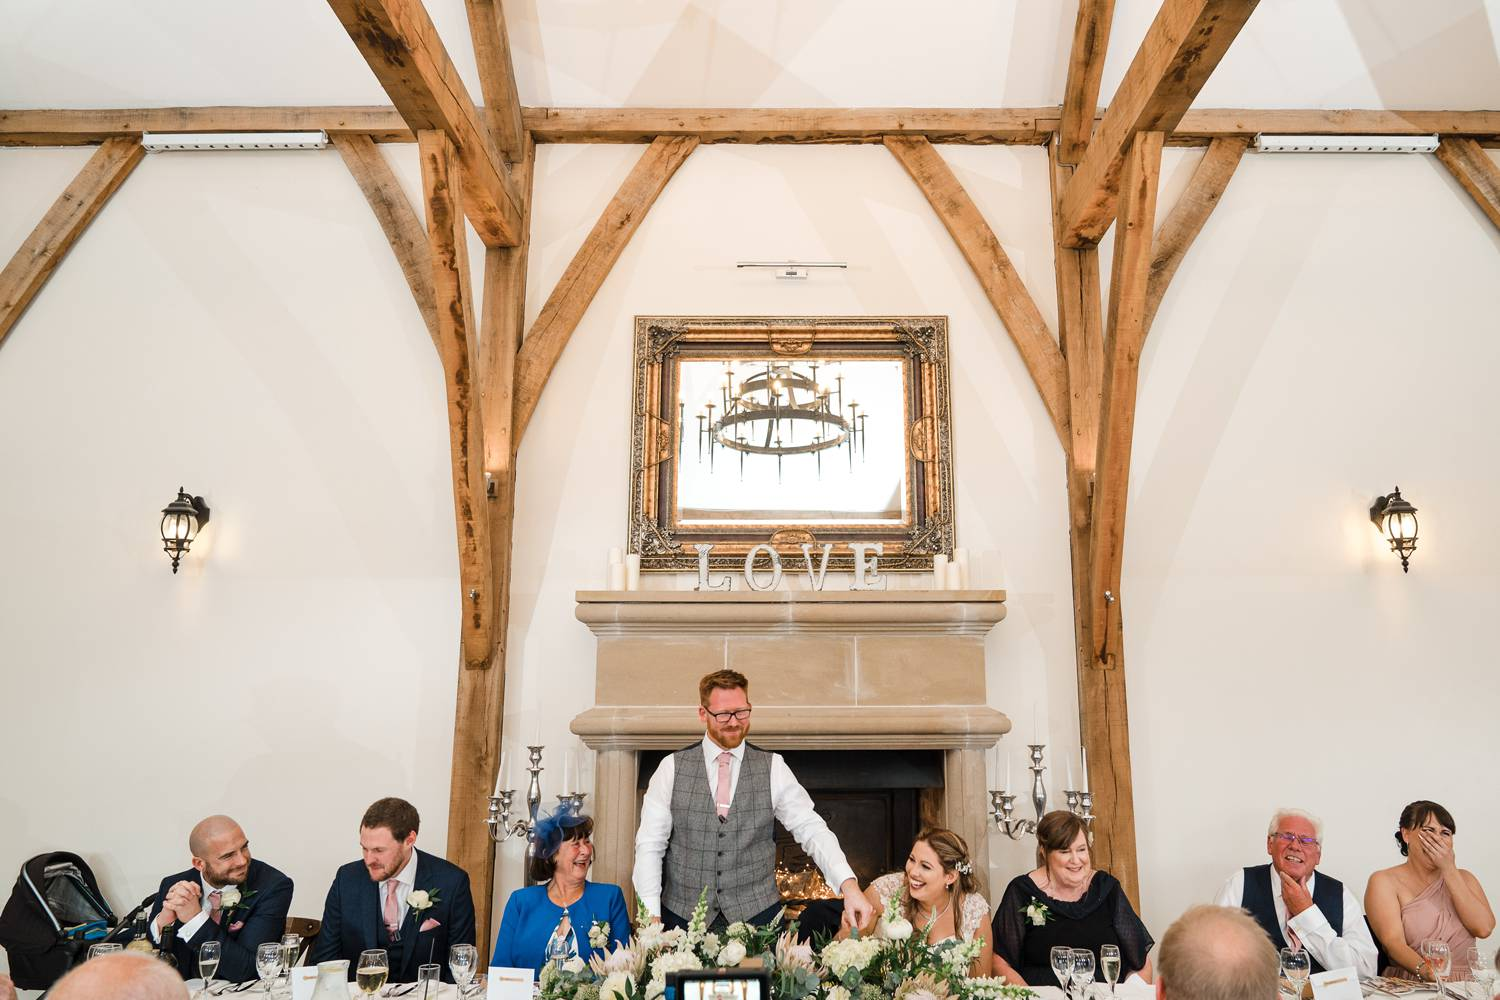 A wide photo showing all the wedding party sat at the top table at Swancar Farm during the groom's speech. The bride is laughing whilst the groom puts his hand on her shoulder. The maid of honour covers her mouth with laughter